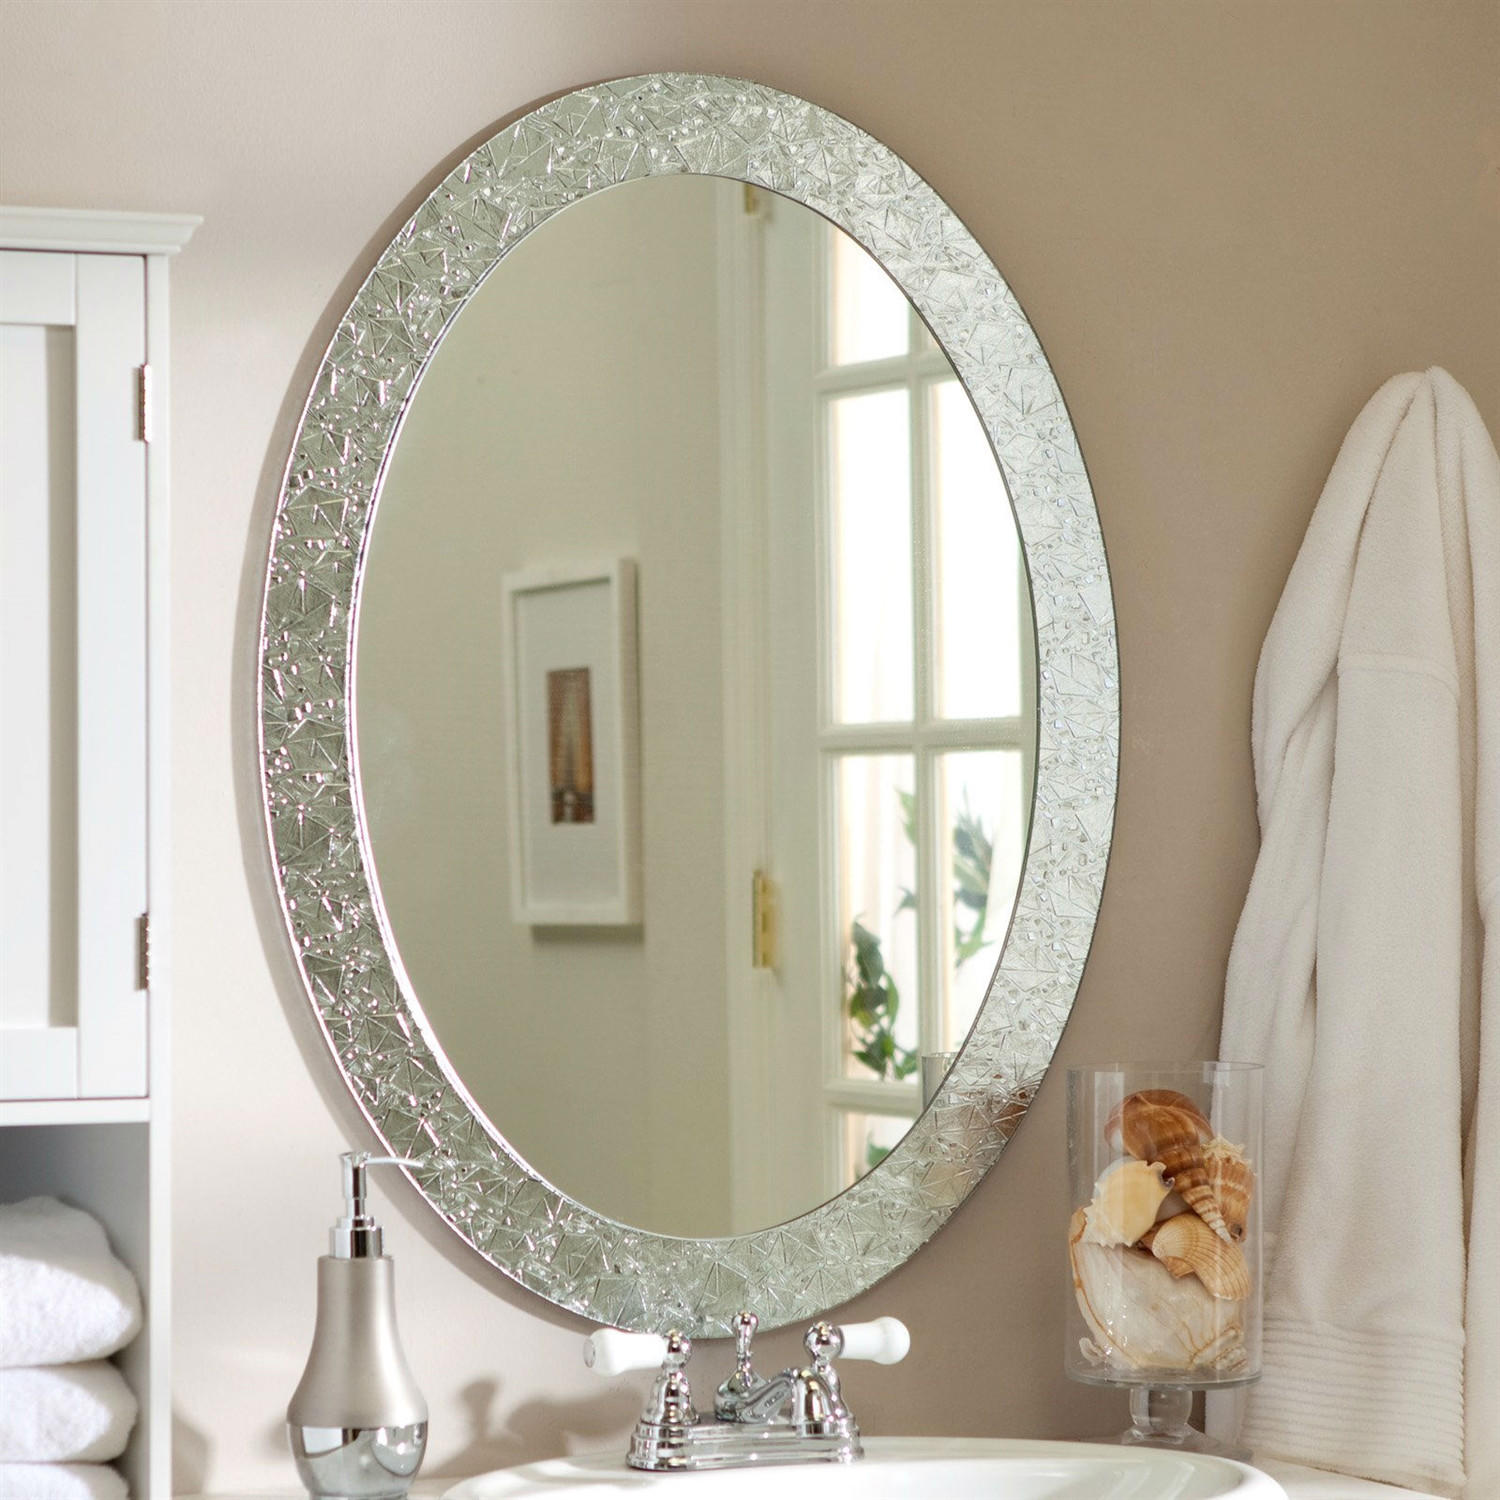 Oval Mirrors Bathroom Oval Frame Less Bathroom Vanity Wall From Hearts Attic Decor